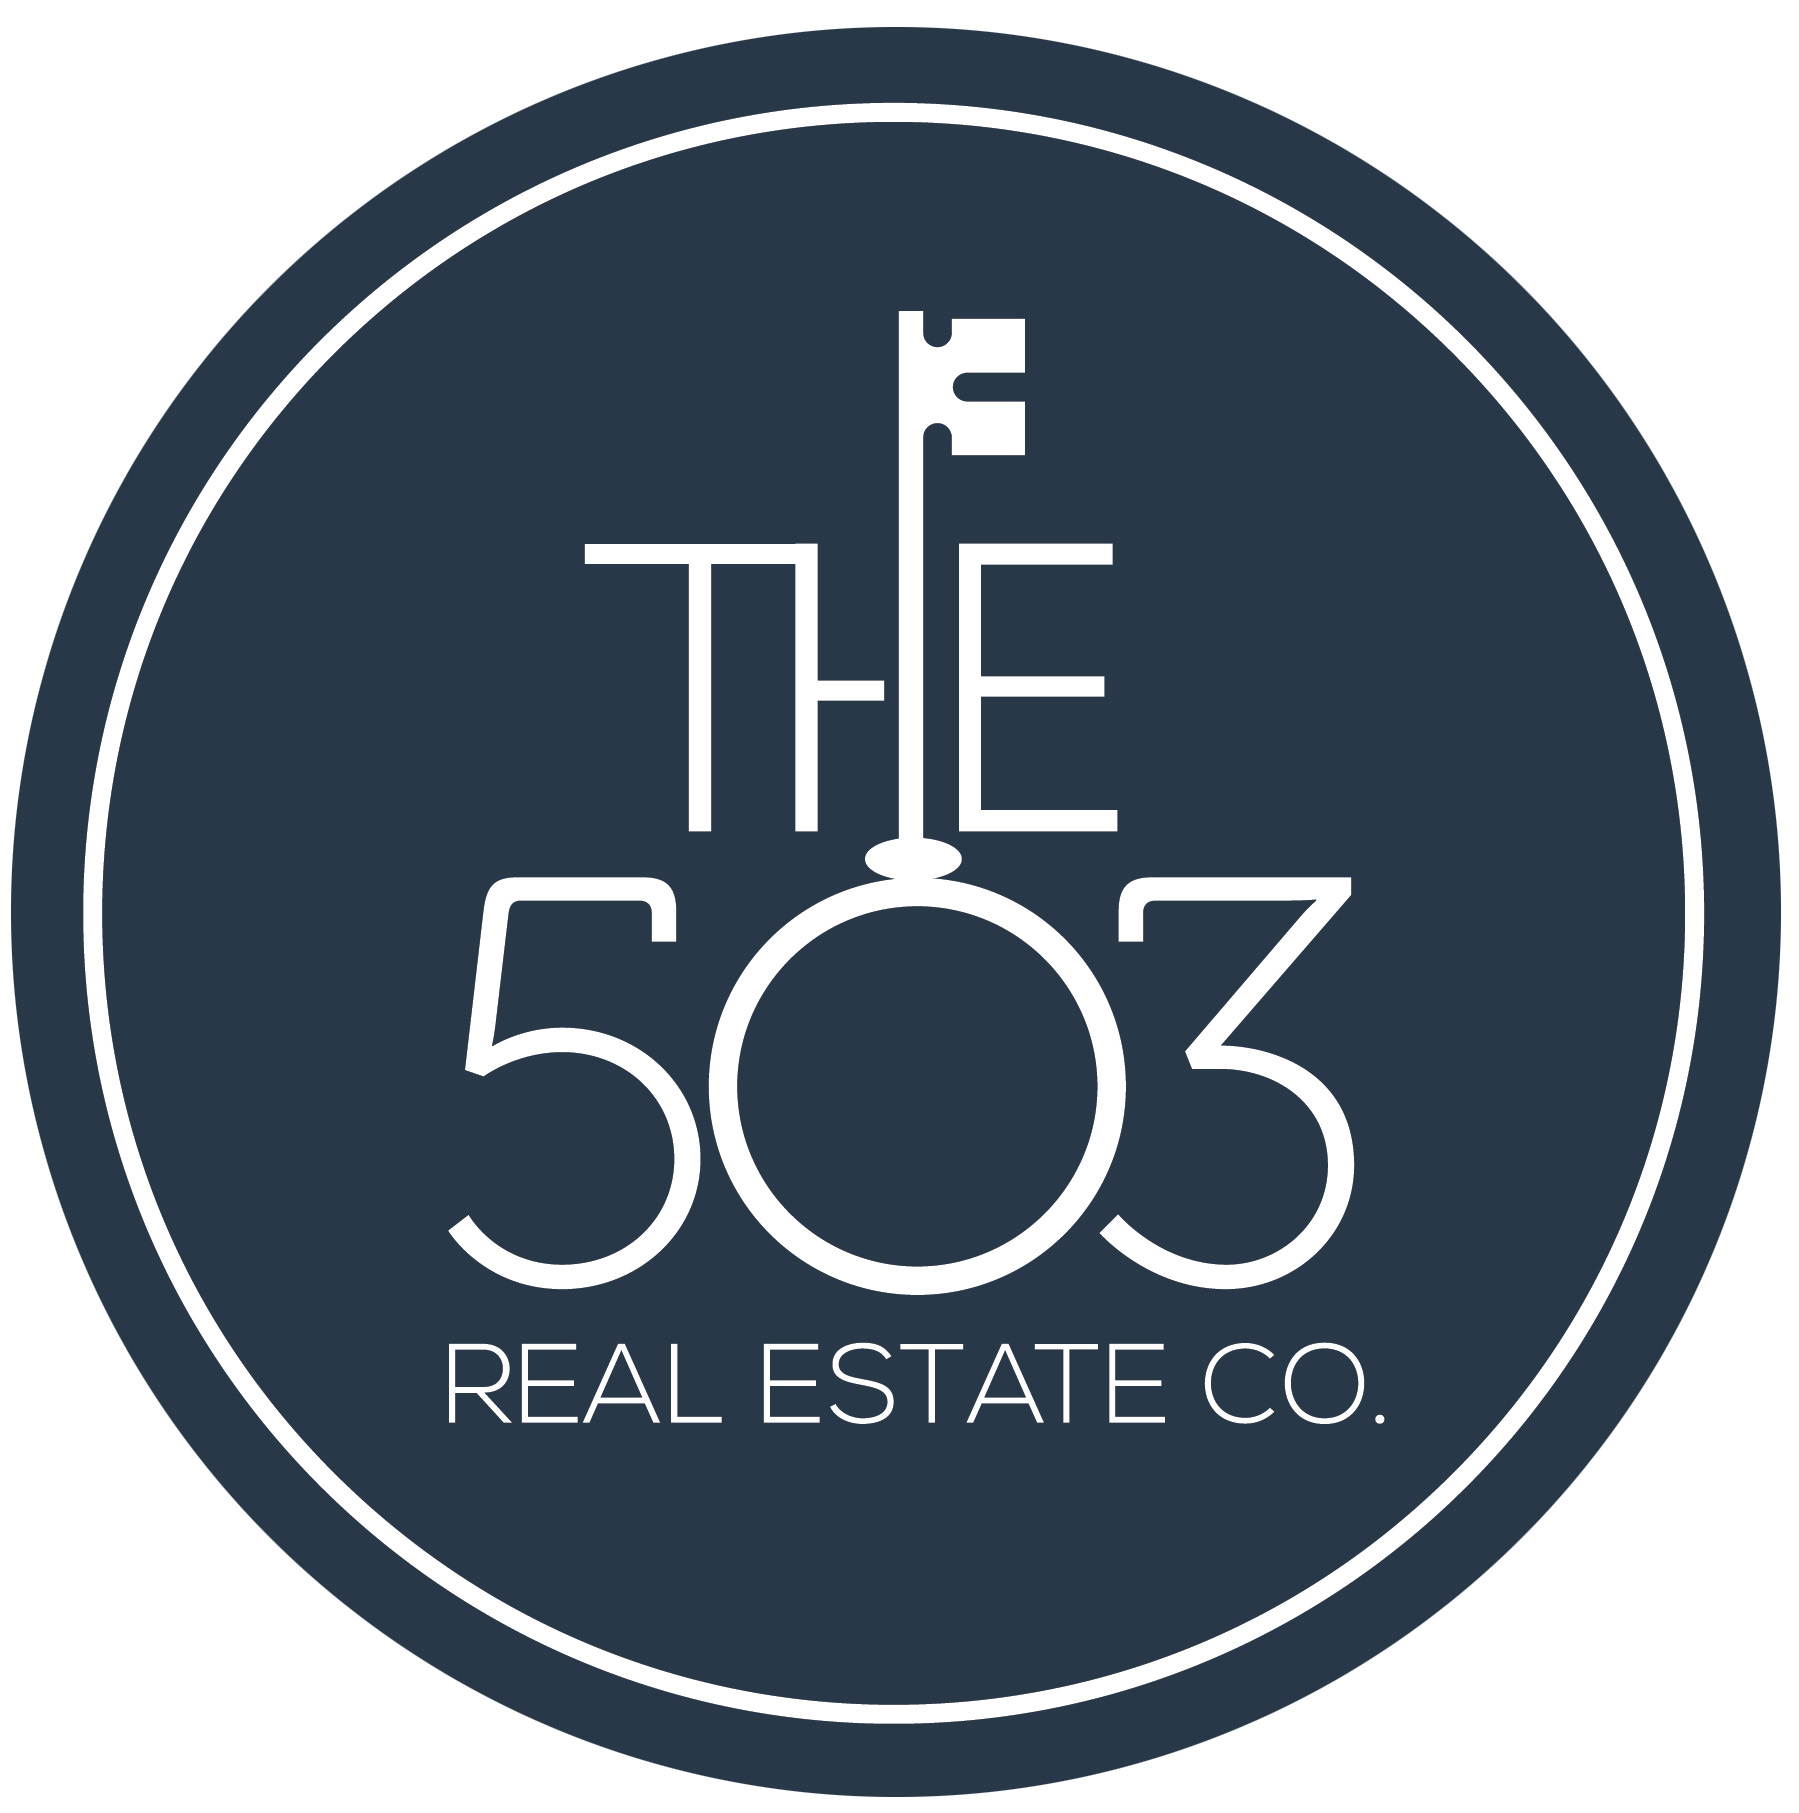 The 503 Real Estate Co.